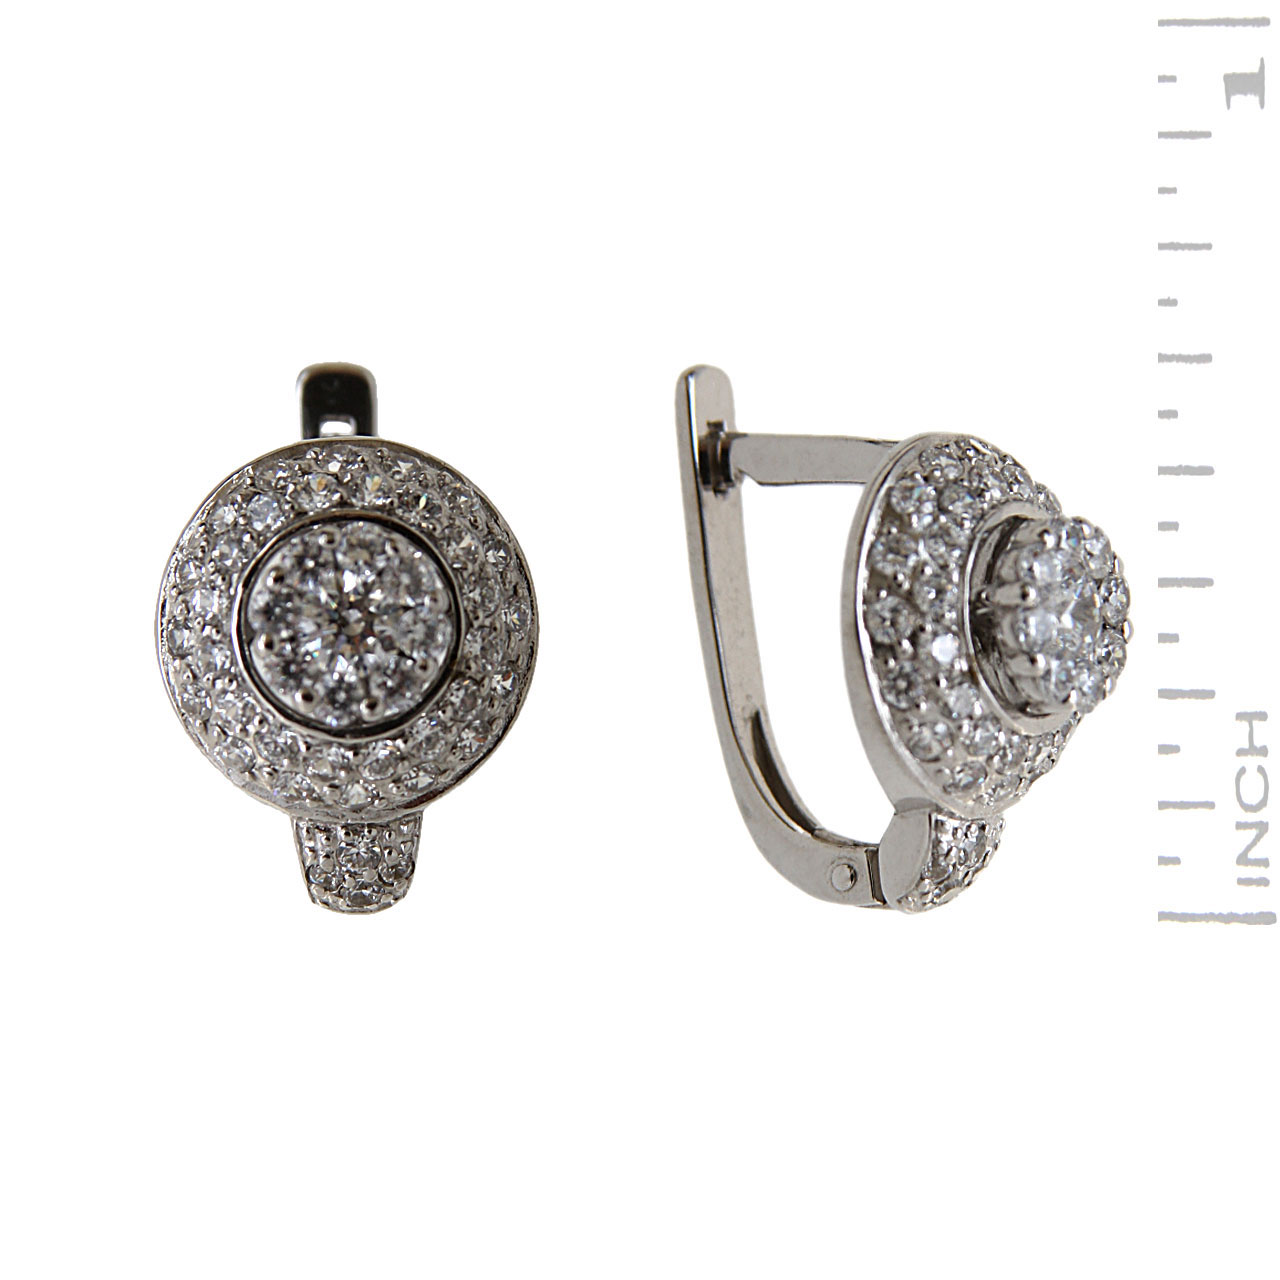 Solitataires leverback white gold earrings 1